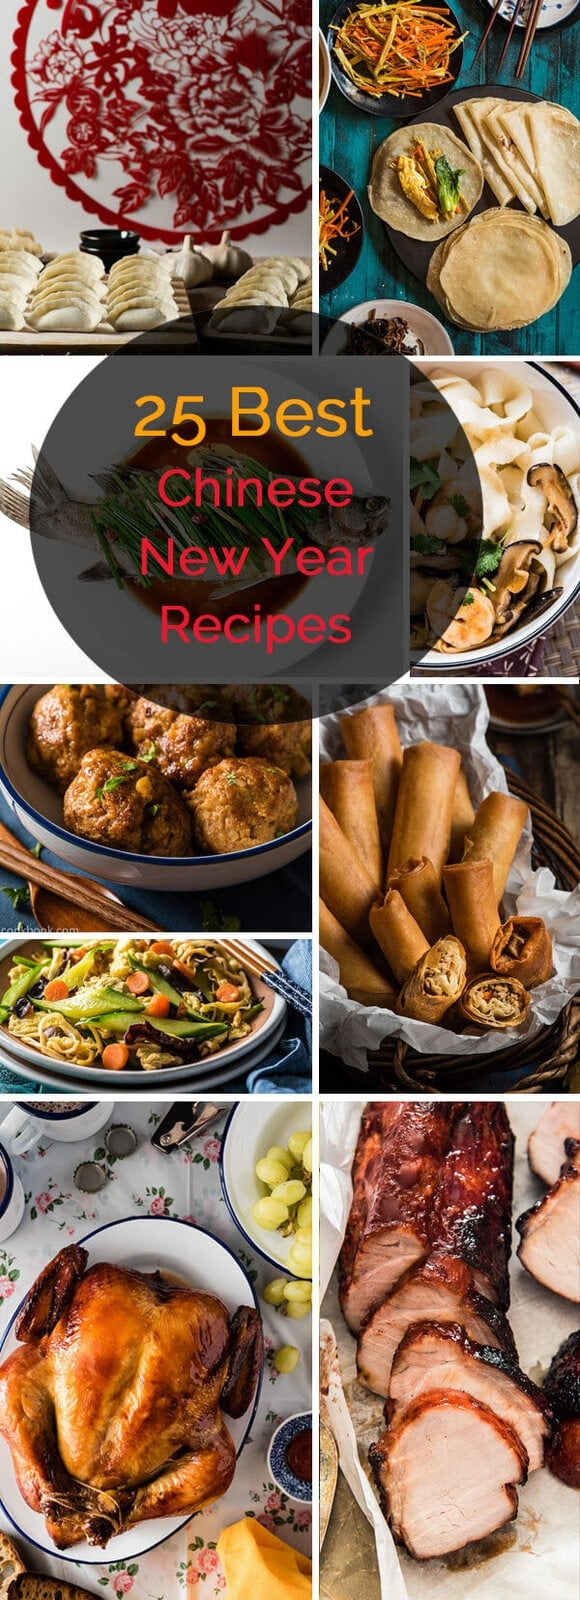 Top 25 chinese new year recipes omnivores cookbook top 25 chinese new year recipes forumfinder Gallery